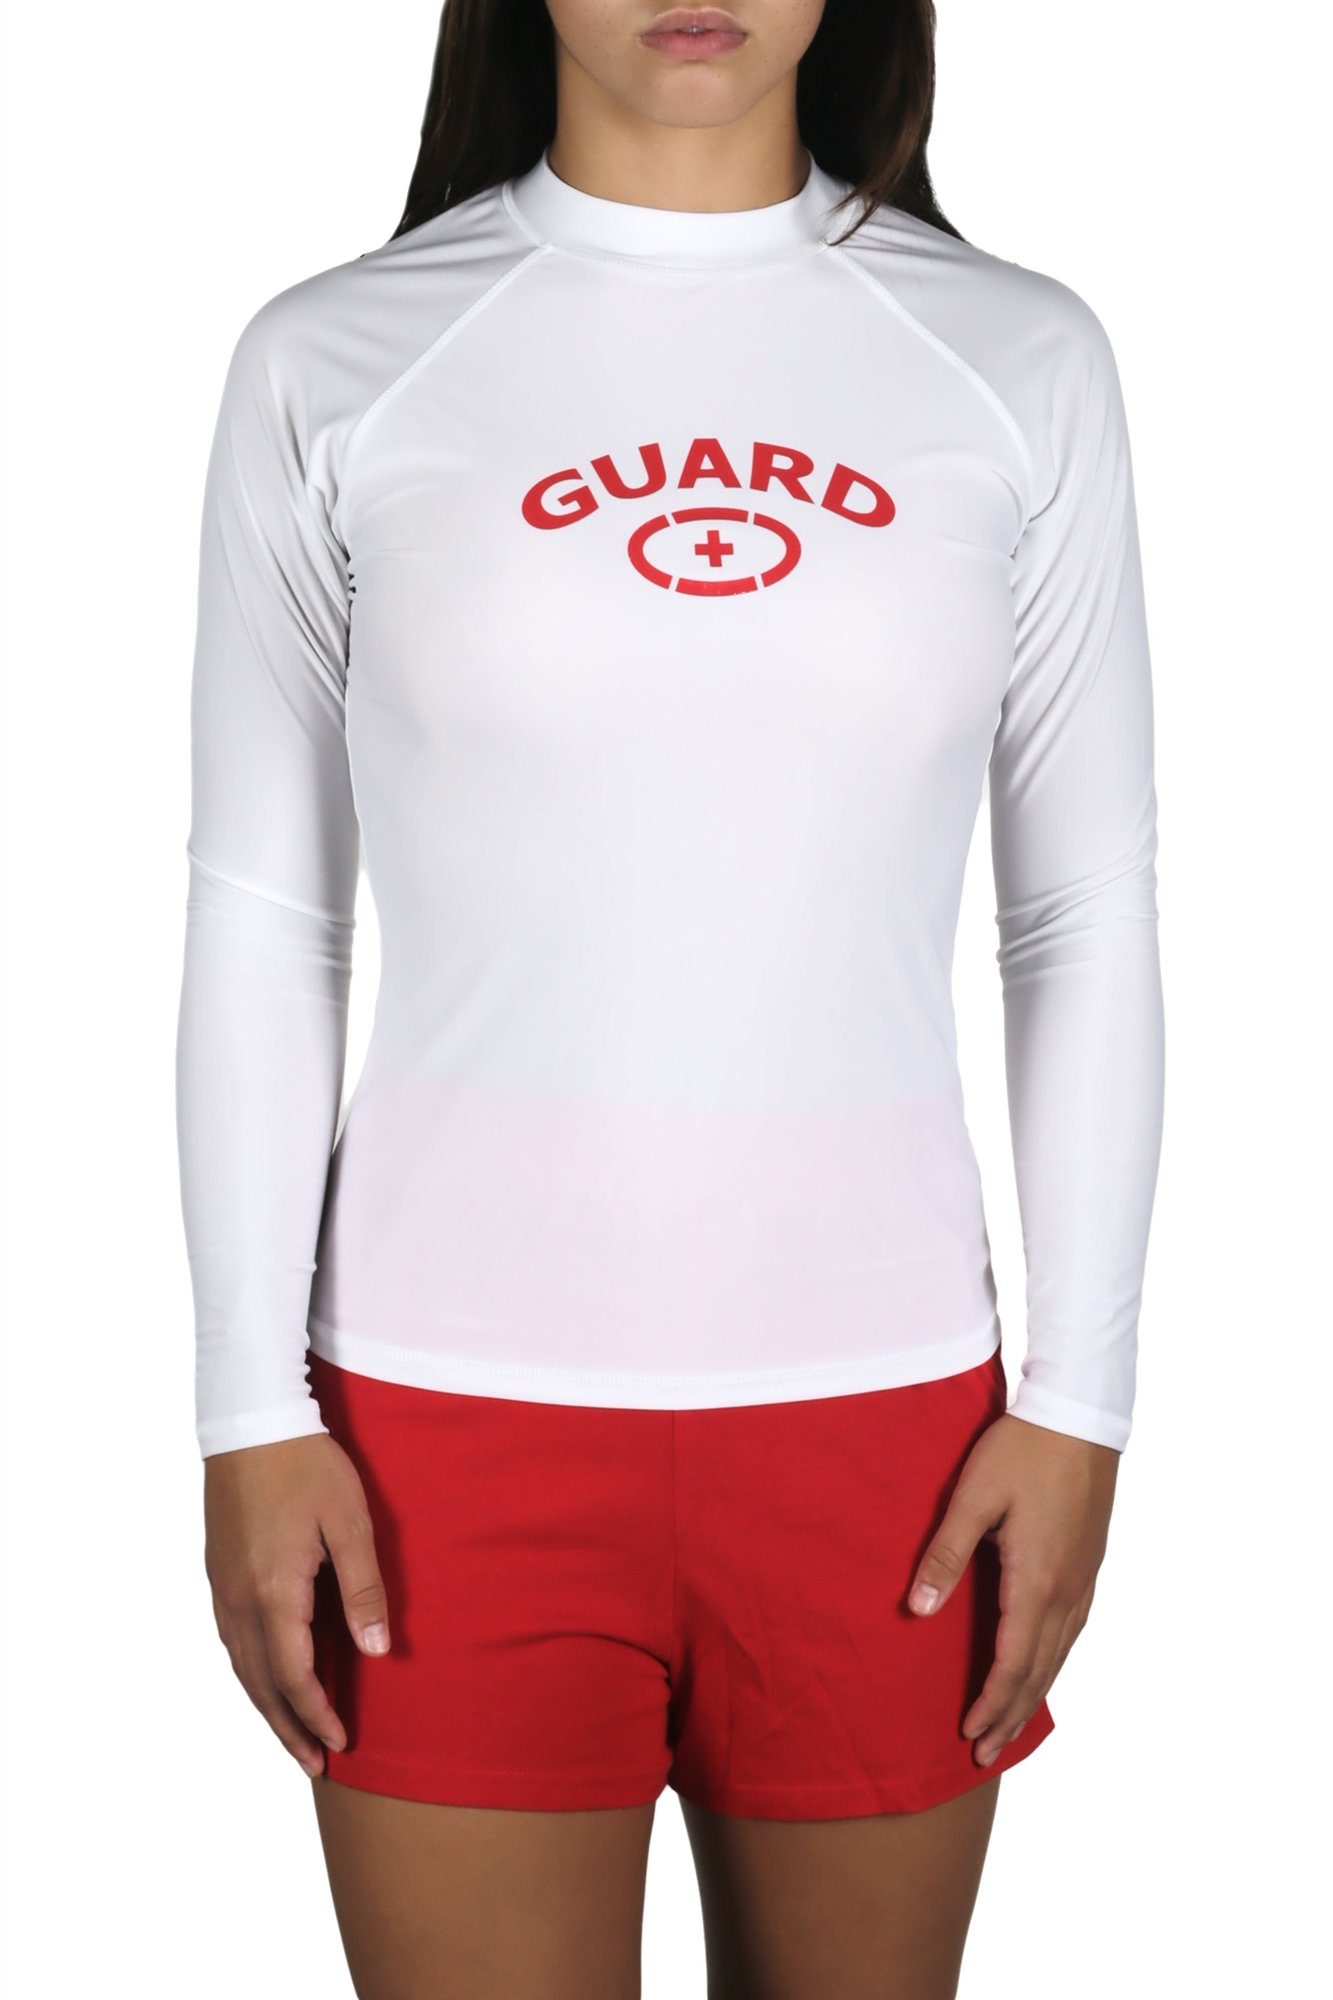 Adoretex Women's Guard Rashguard Long Sleeve Swim Shirt (White, Large) by Adoretex